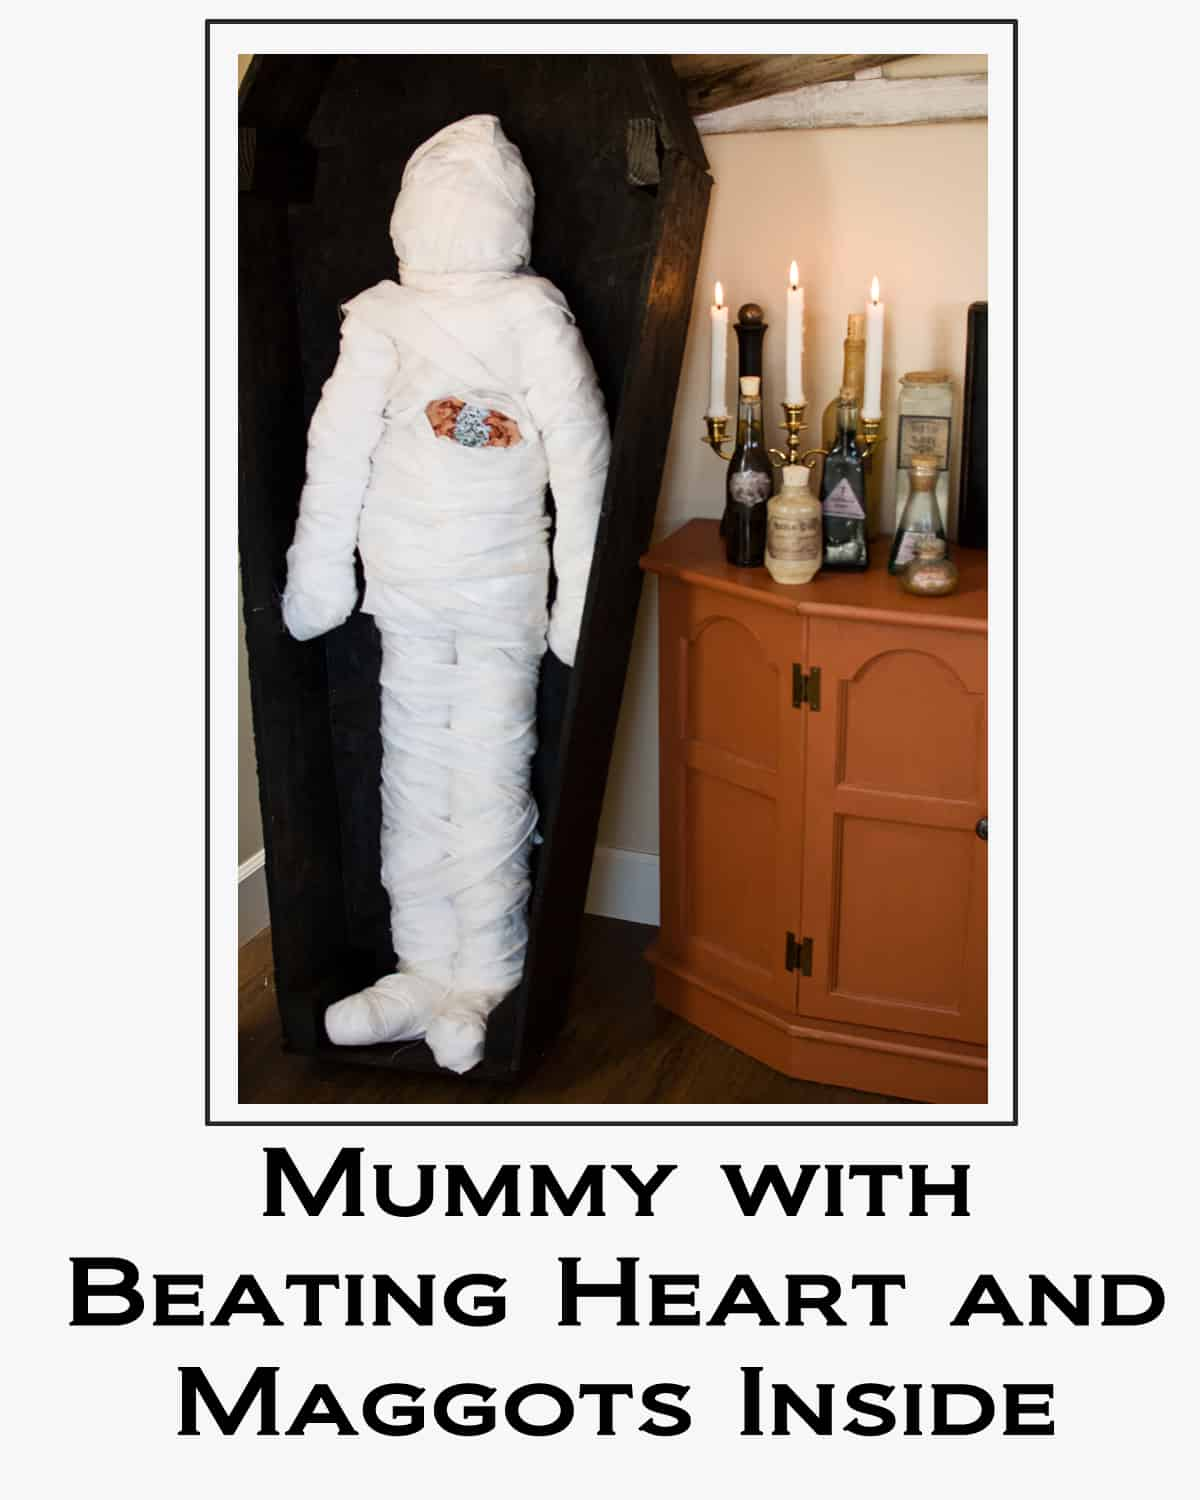 Mummy with Beating Heart and Maggots Inside button